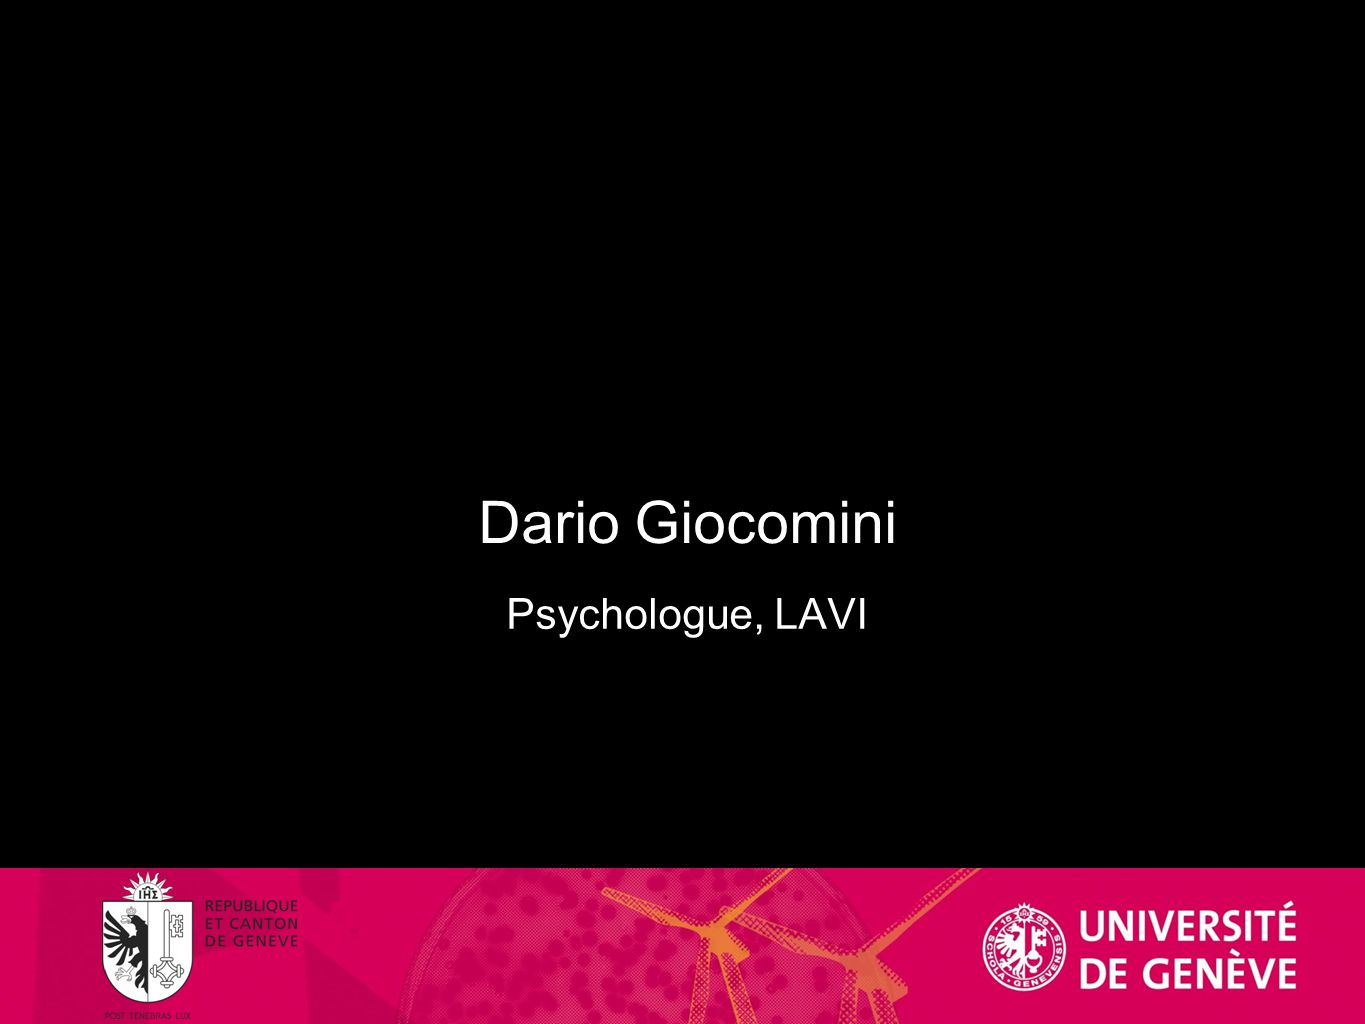 Dario Giocomini Psychologue, LAVI